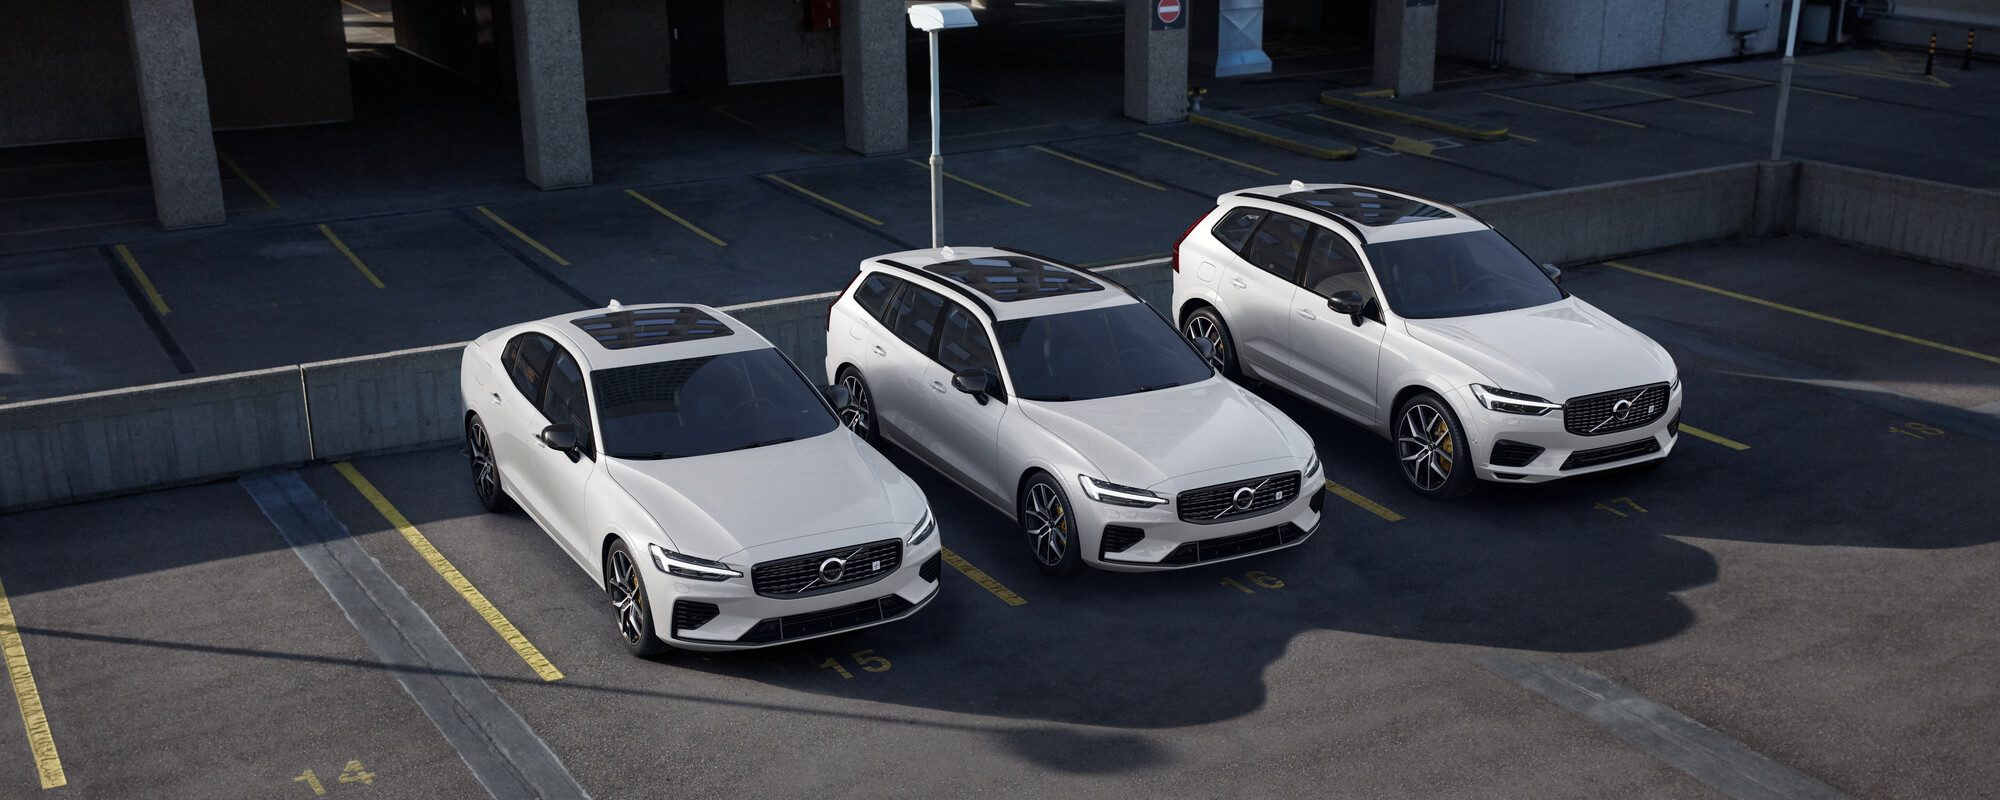 Volvo Bangarage Polestar Engineered